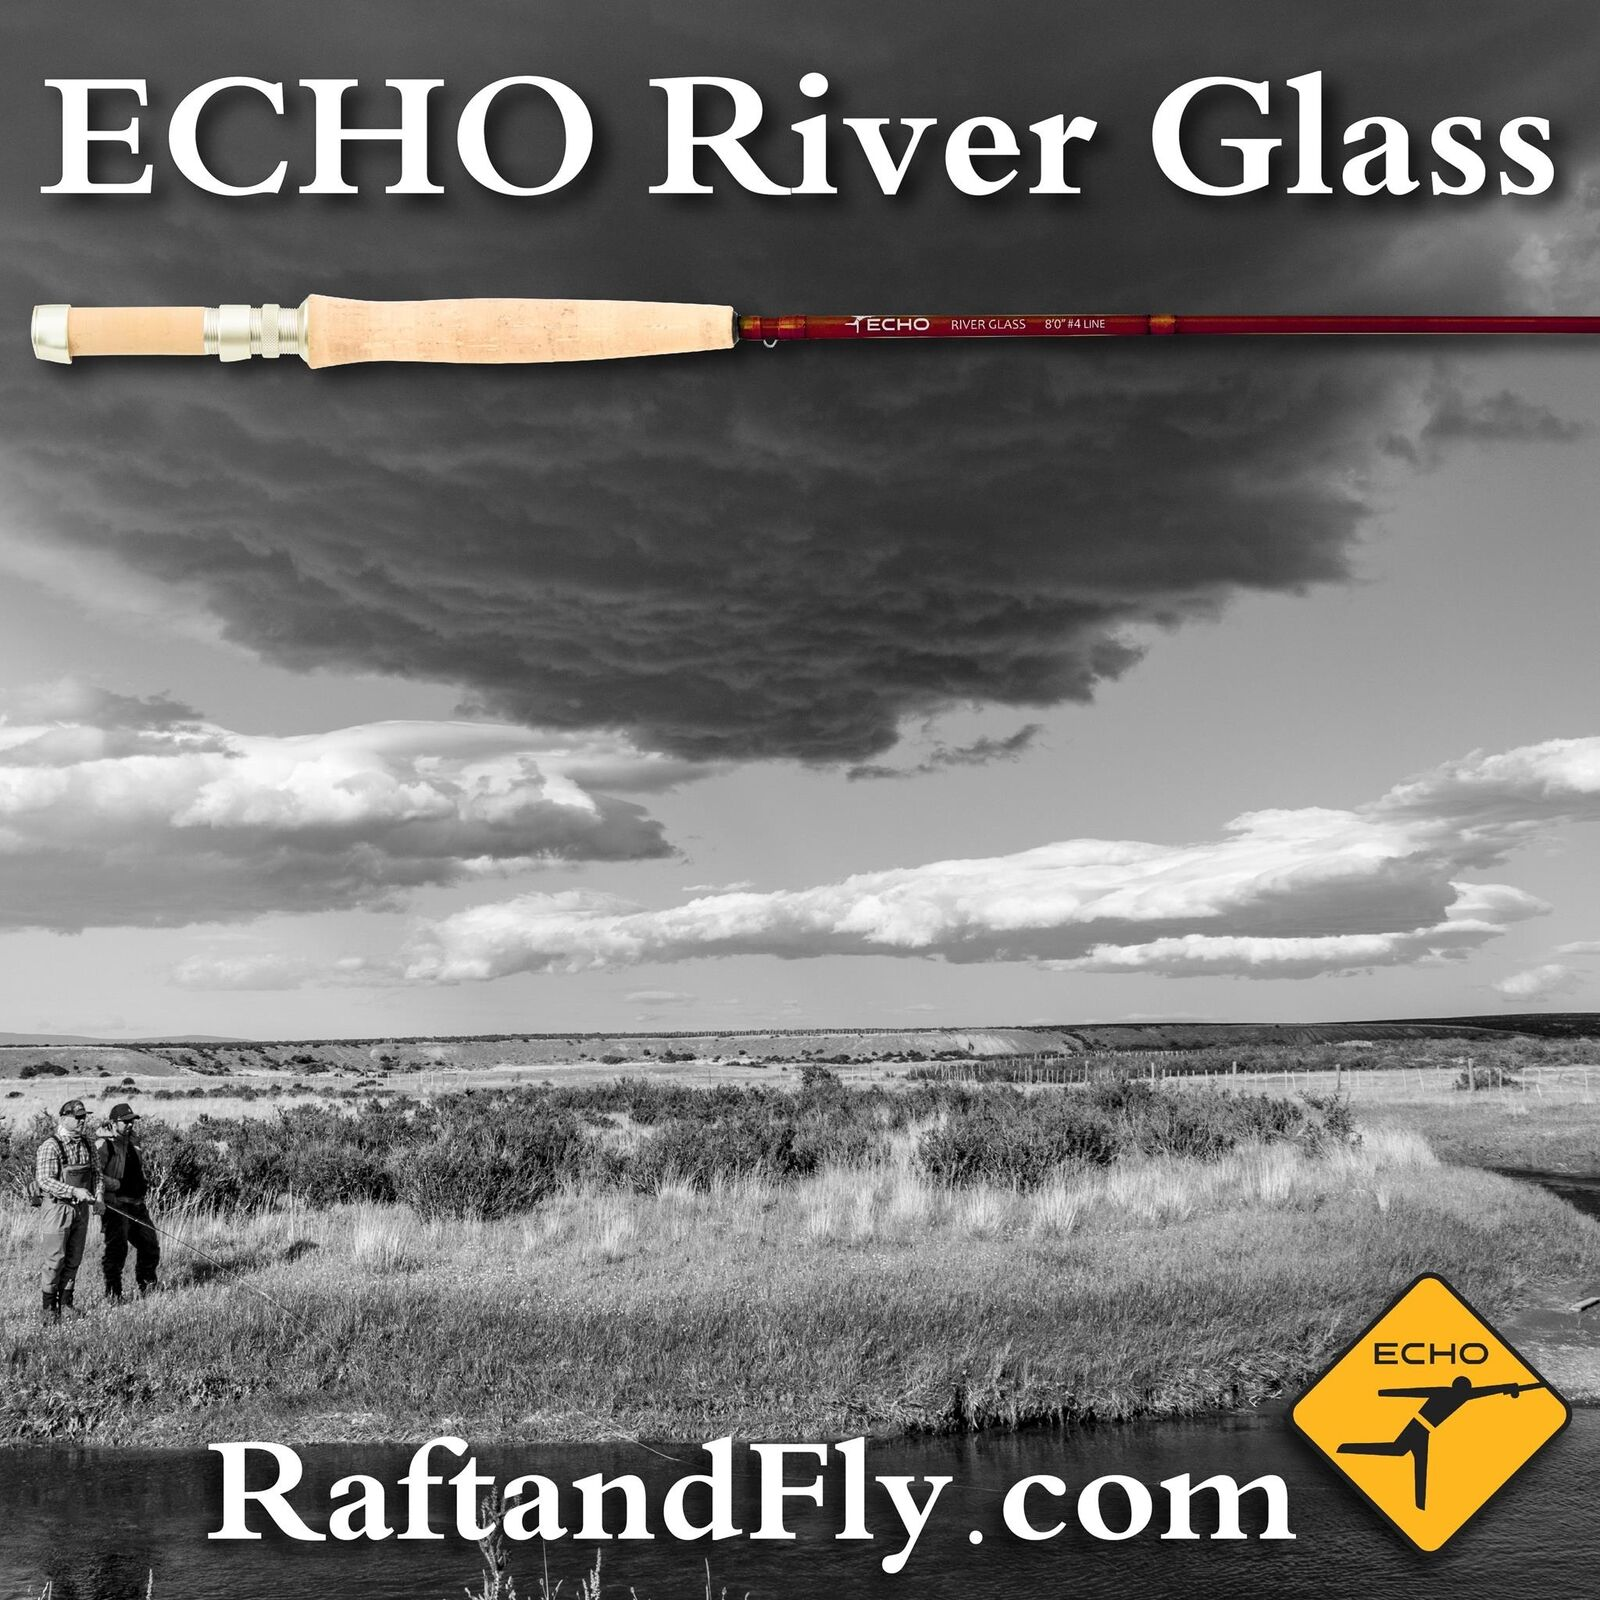 ECHO River Glass 5wt Amber Caramel 8'6  - Lifetime Warranty - FREE SHIPPING